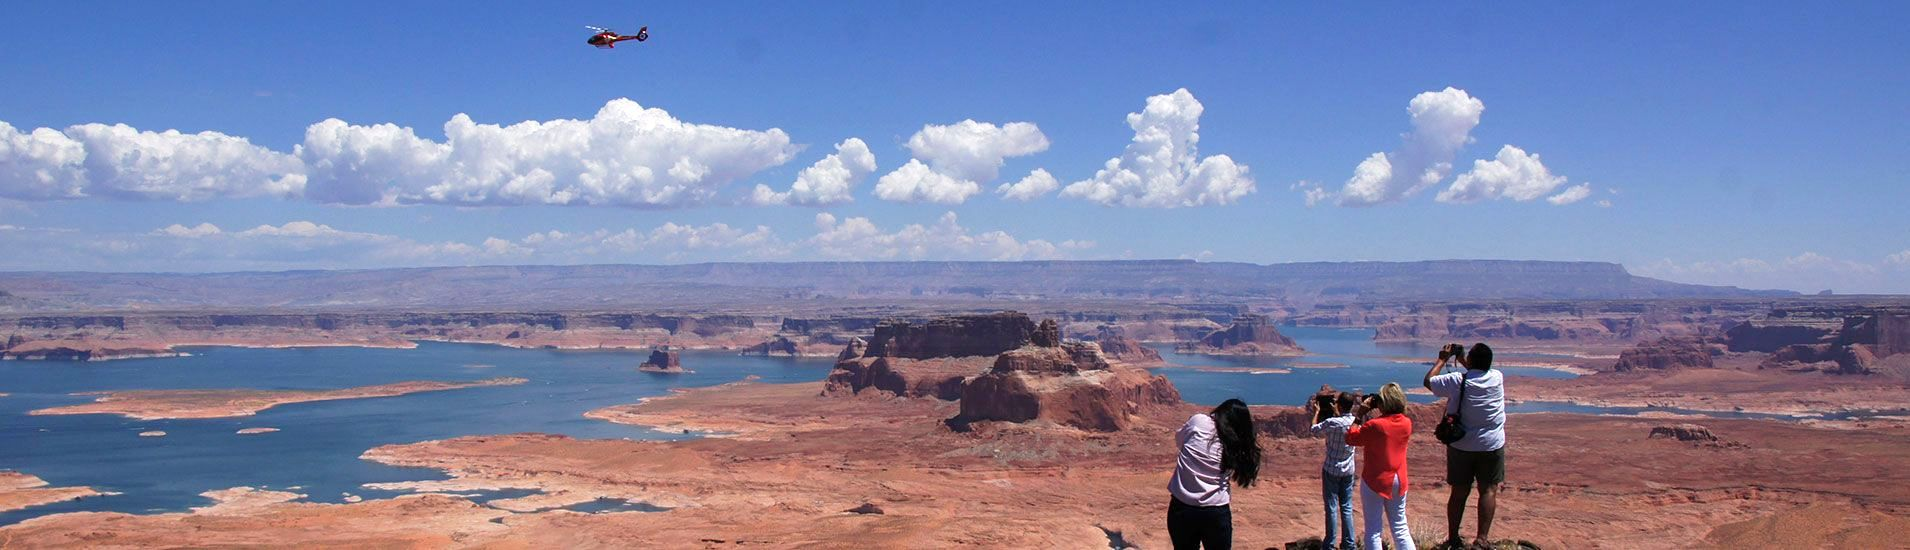 TOWER BUTTE LANDING WITH HORSESHOE BEND